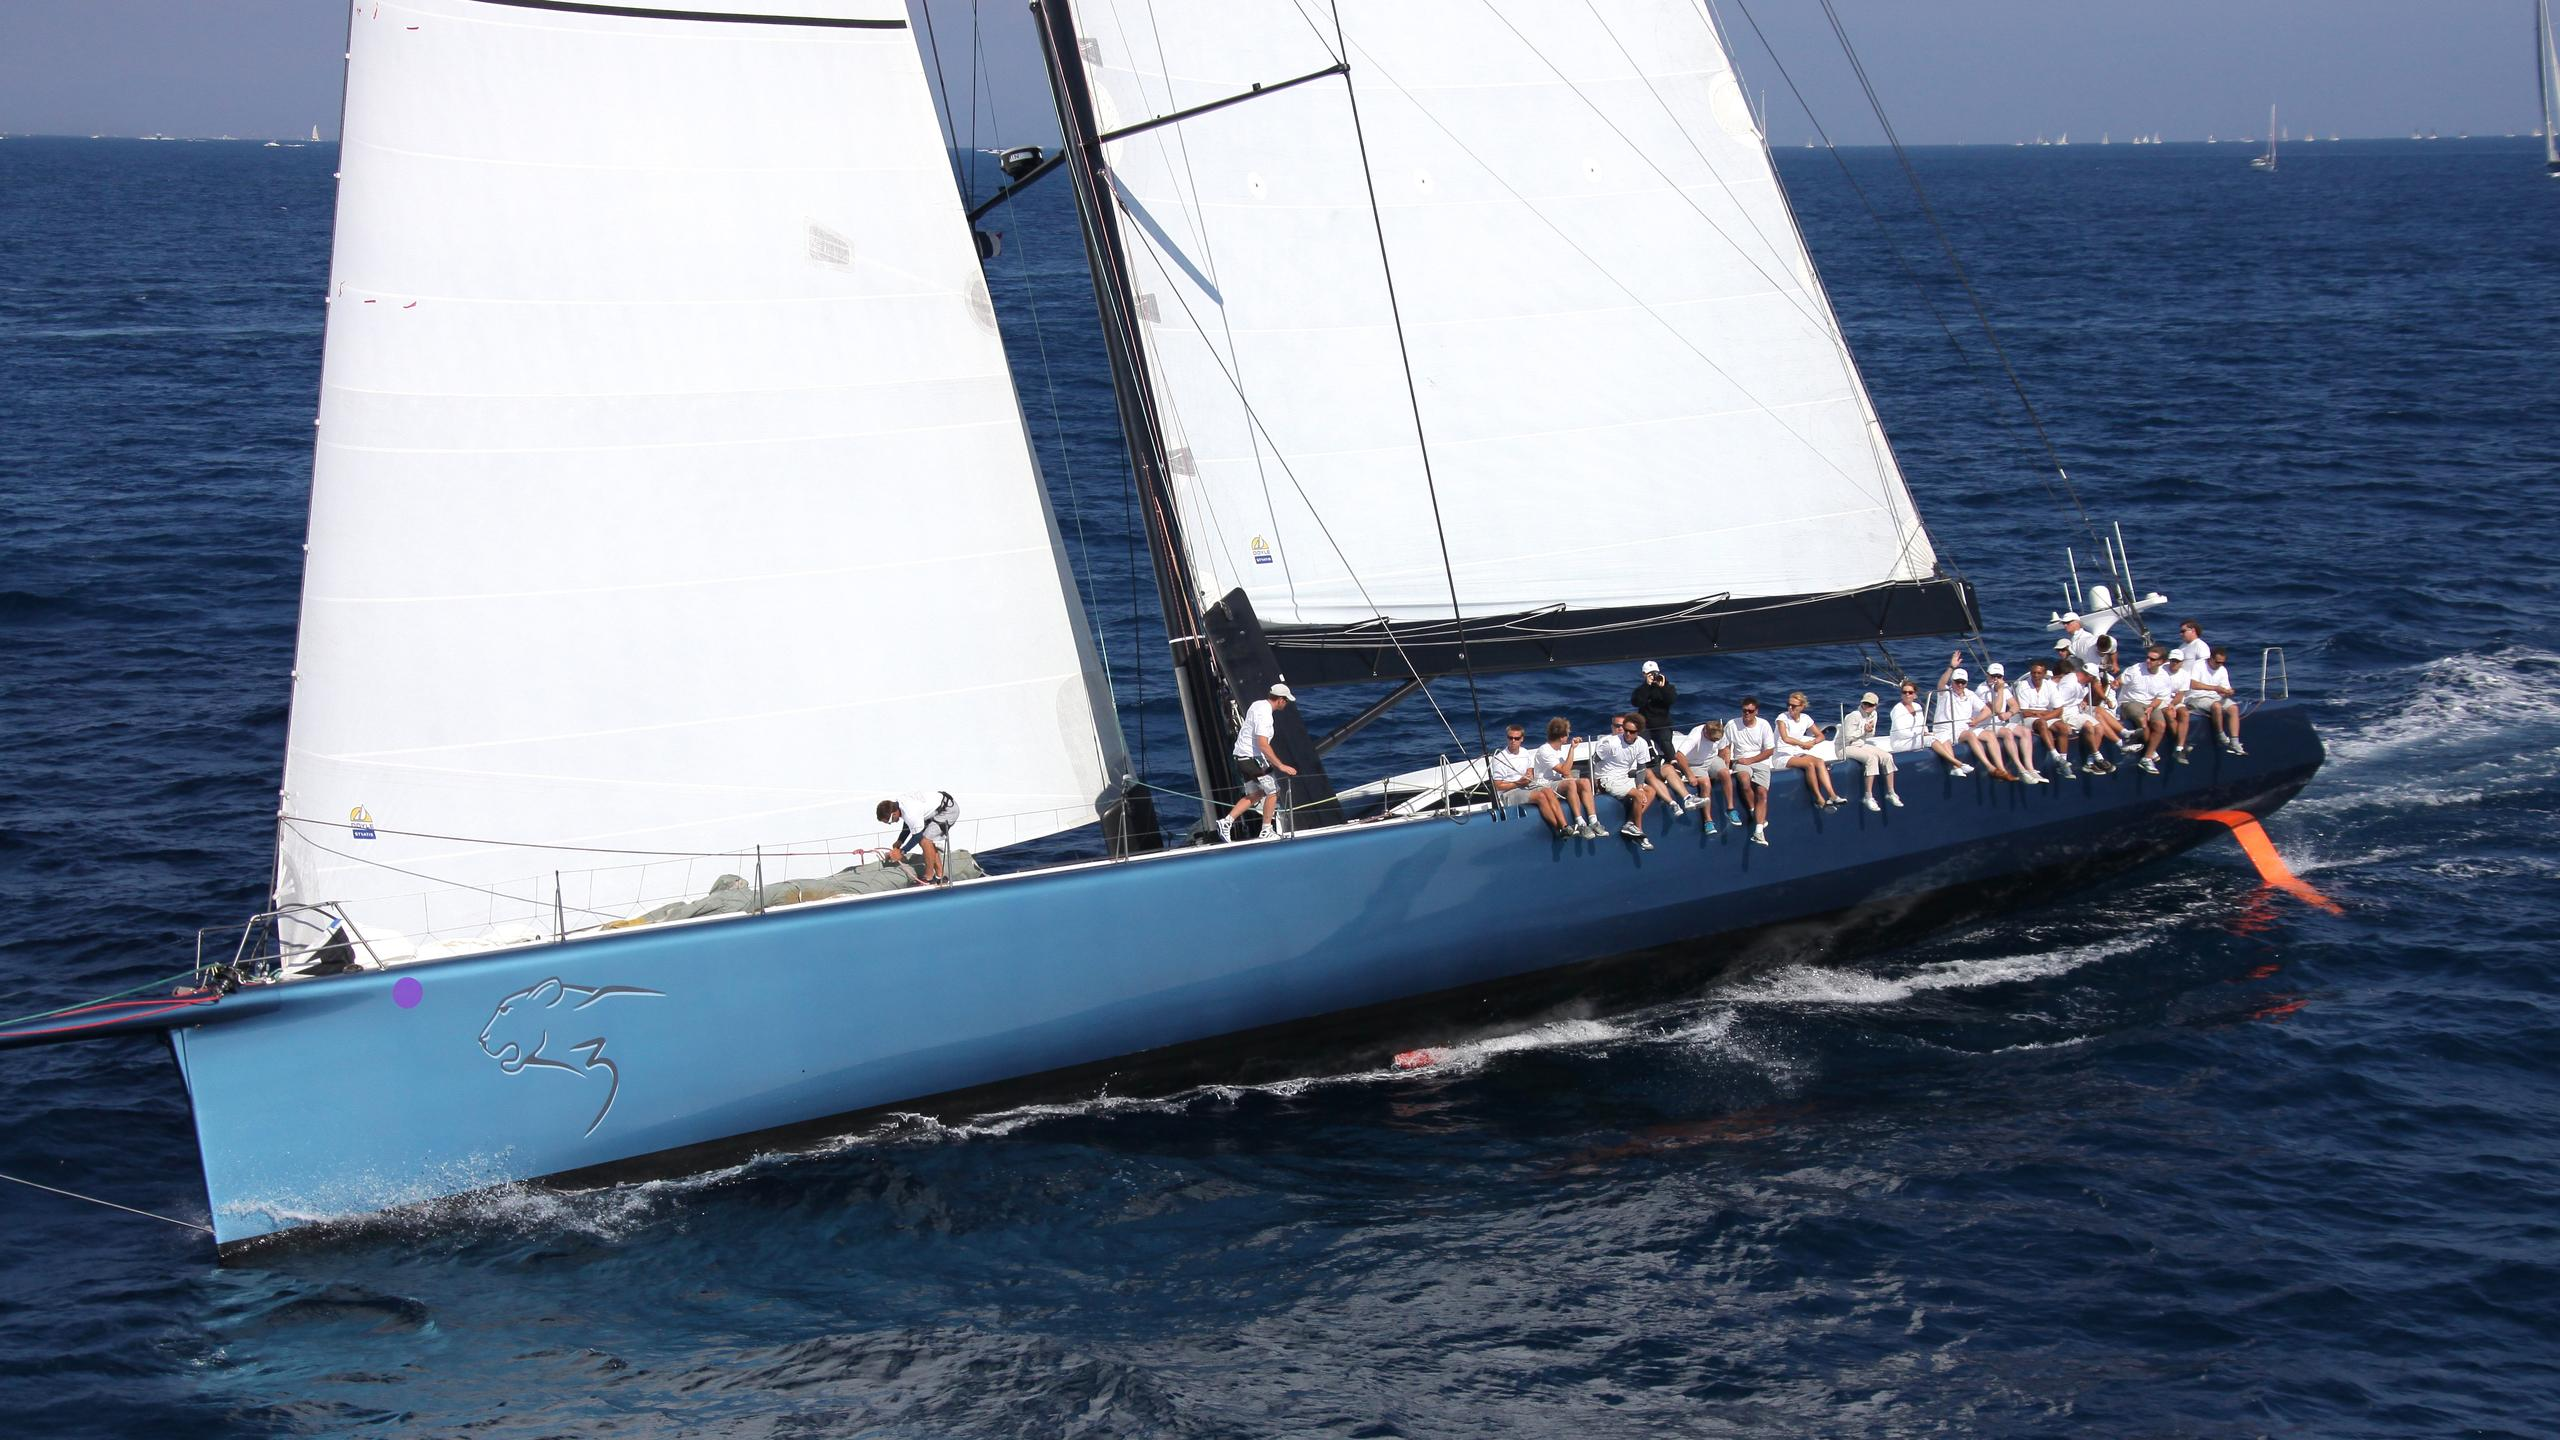 leopard-3-yacht-for-charter-profile